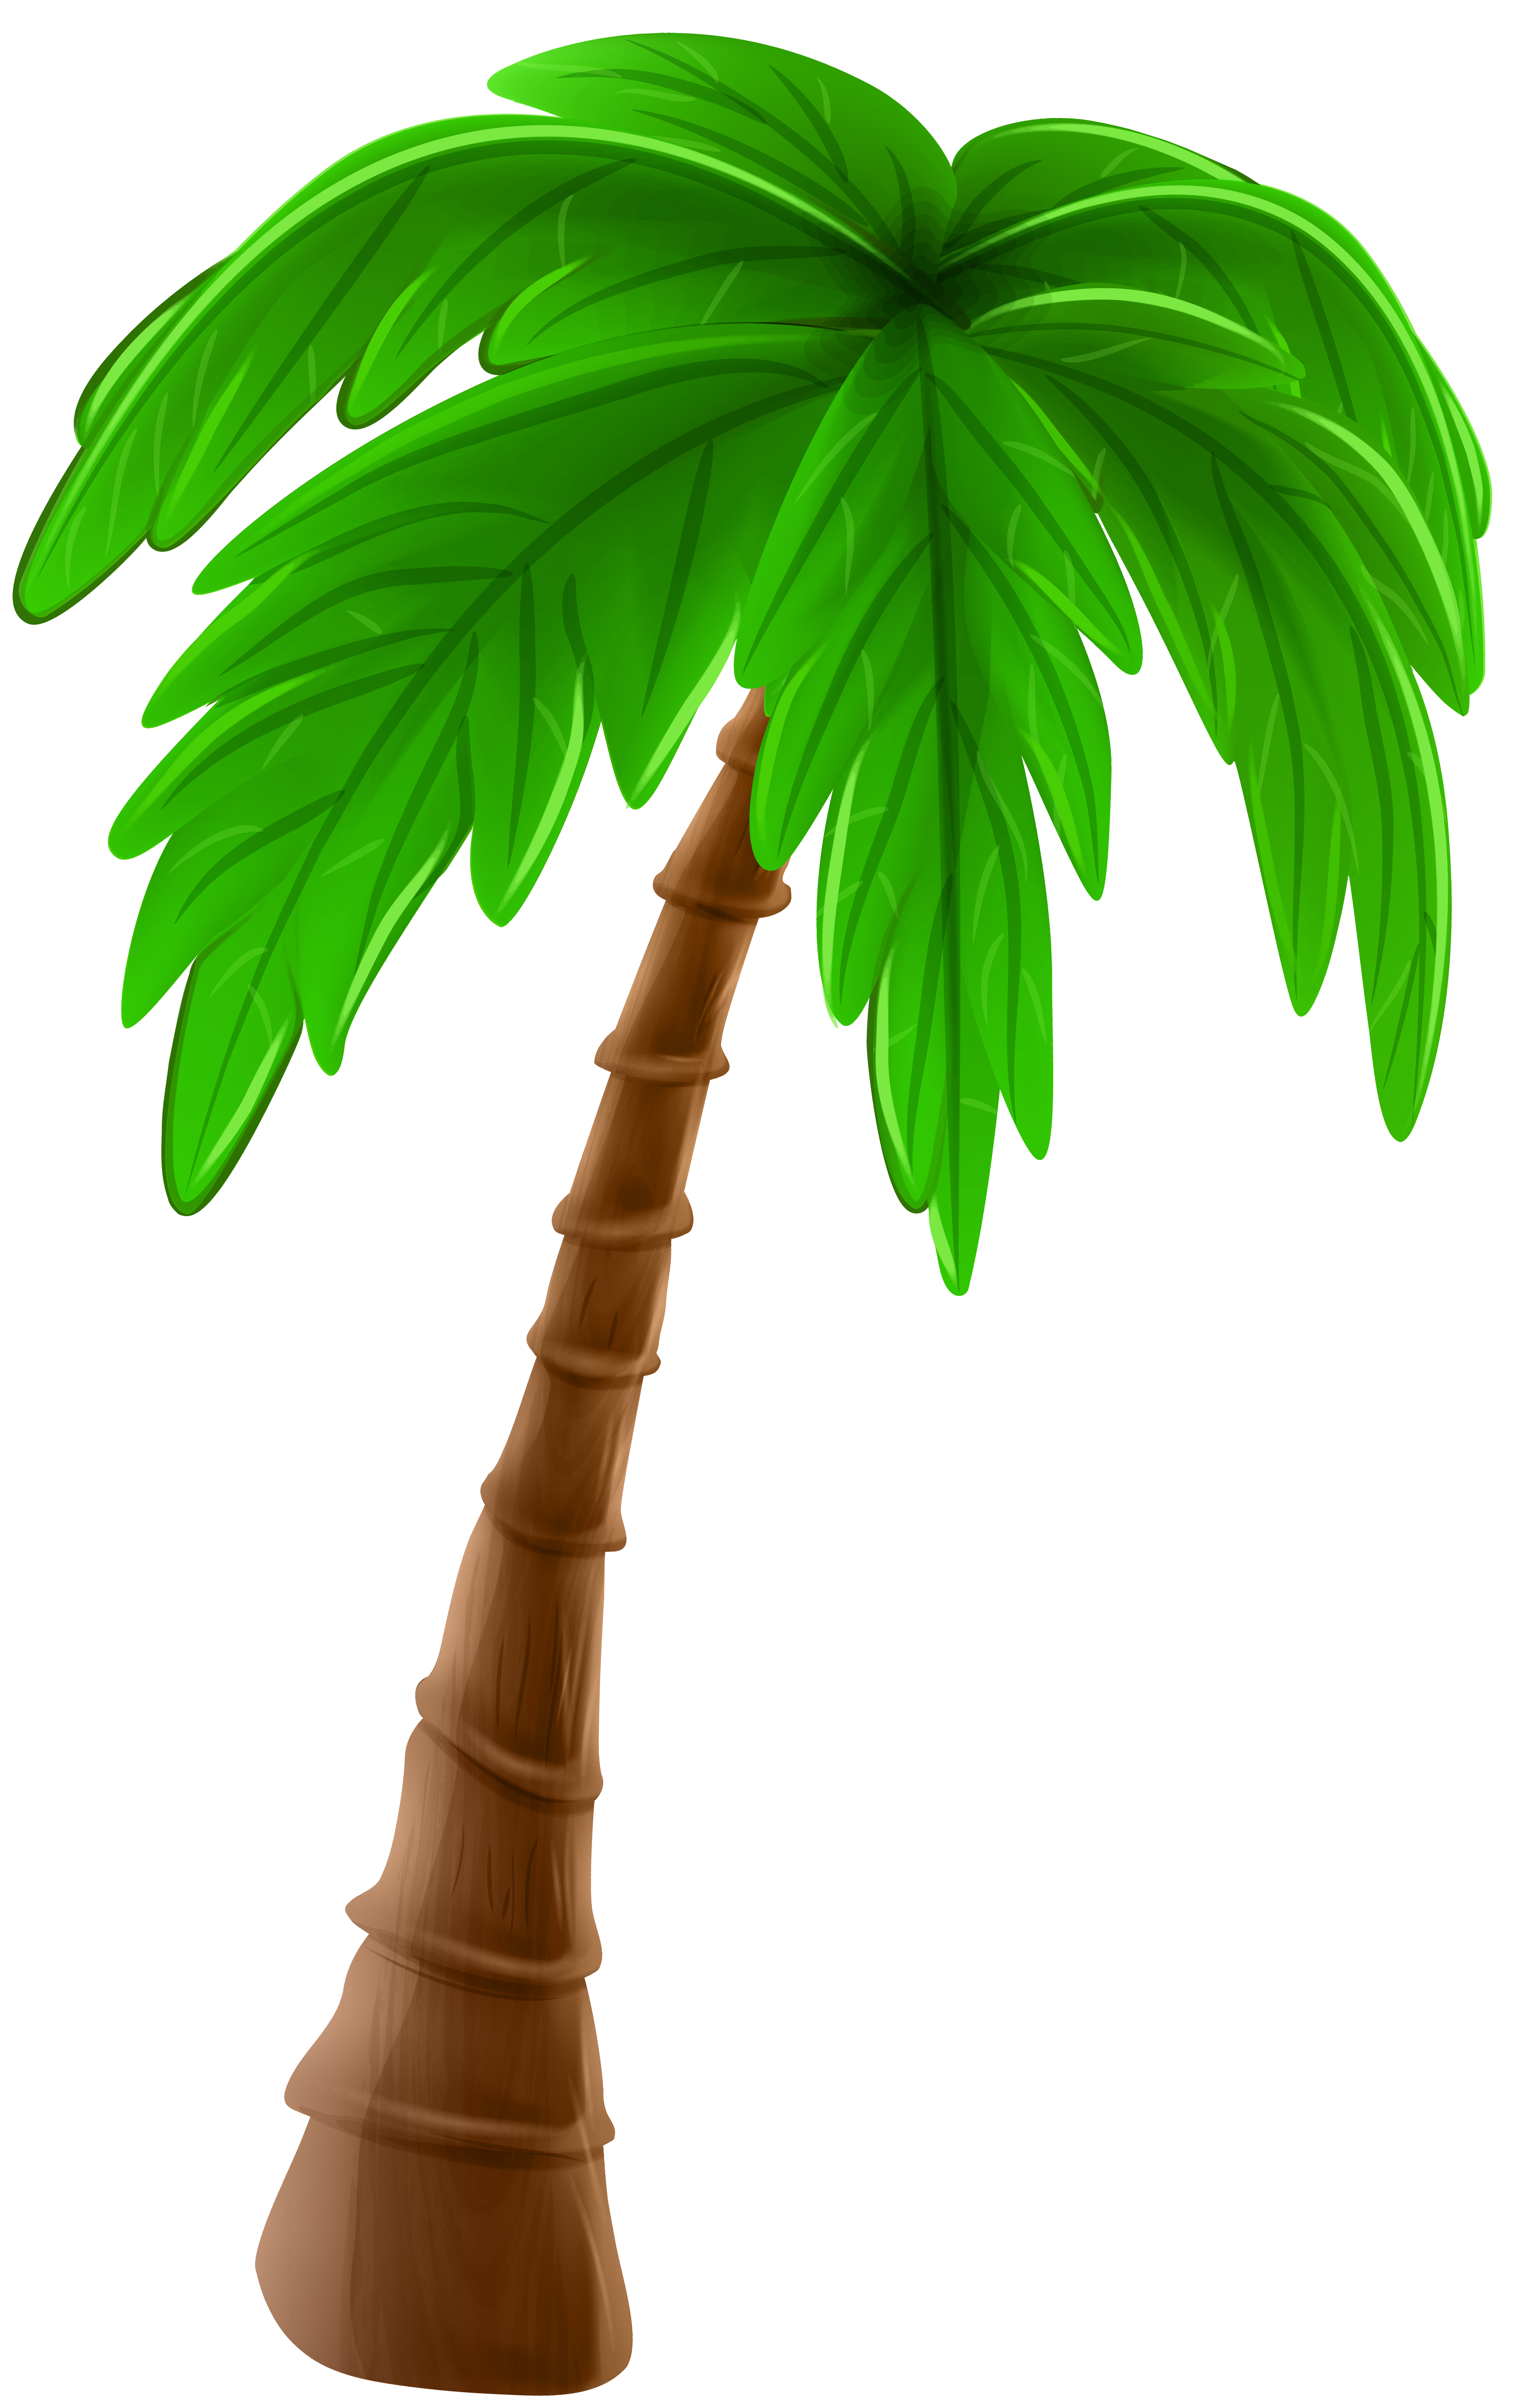 Clipart tree cartoon. Palm png clip art